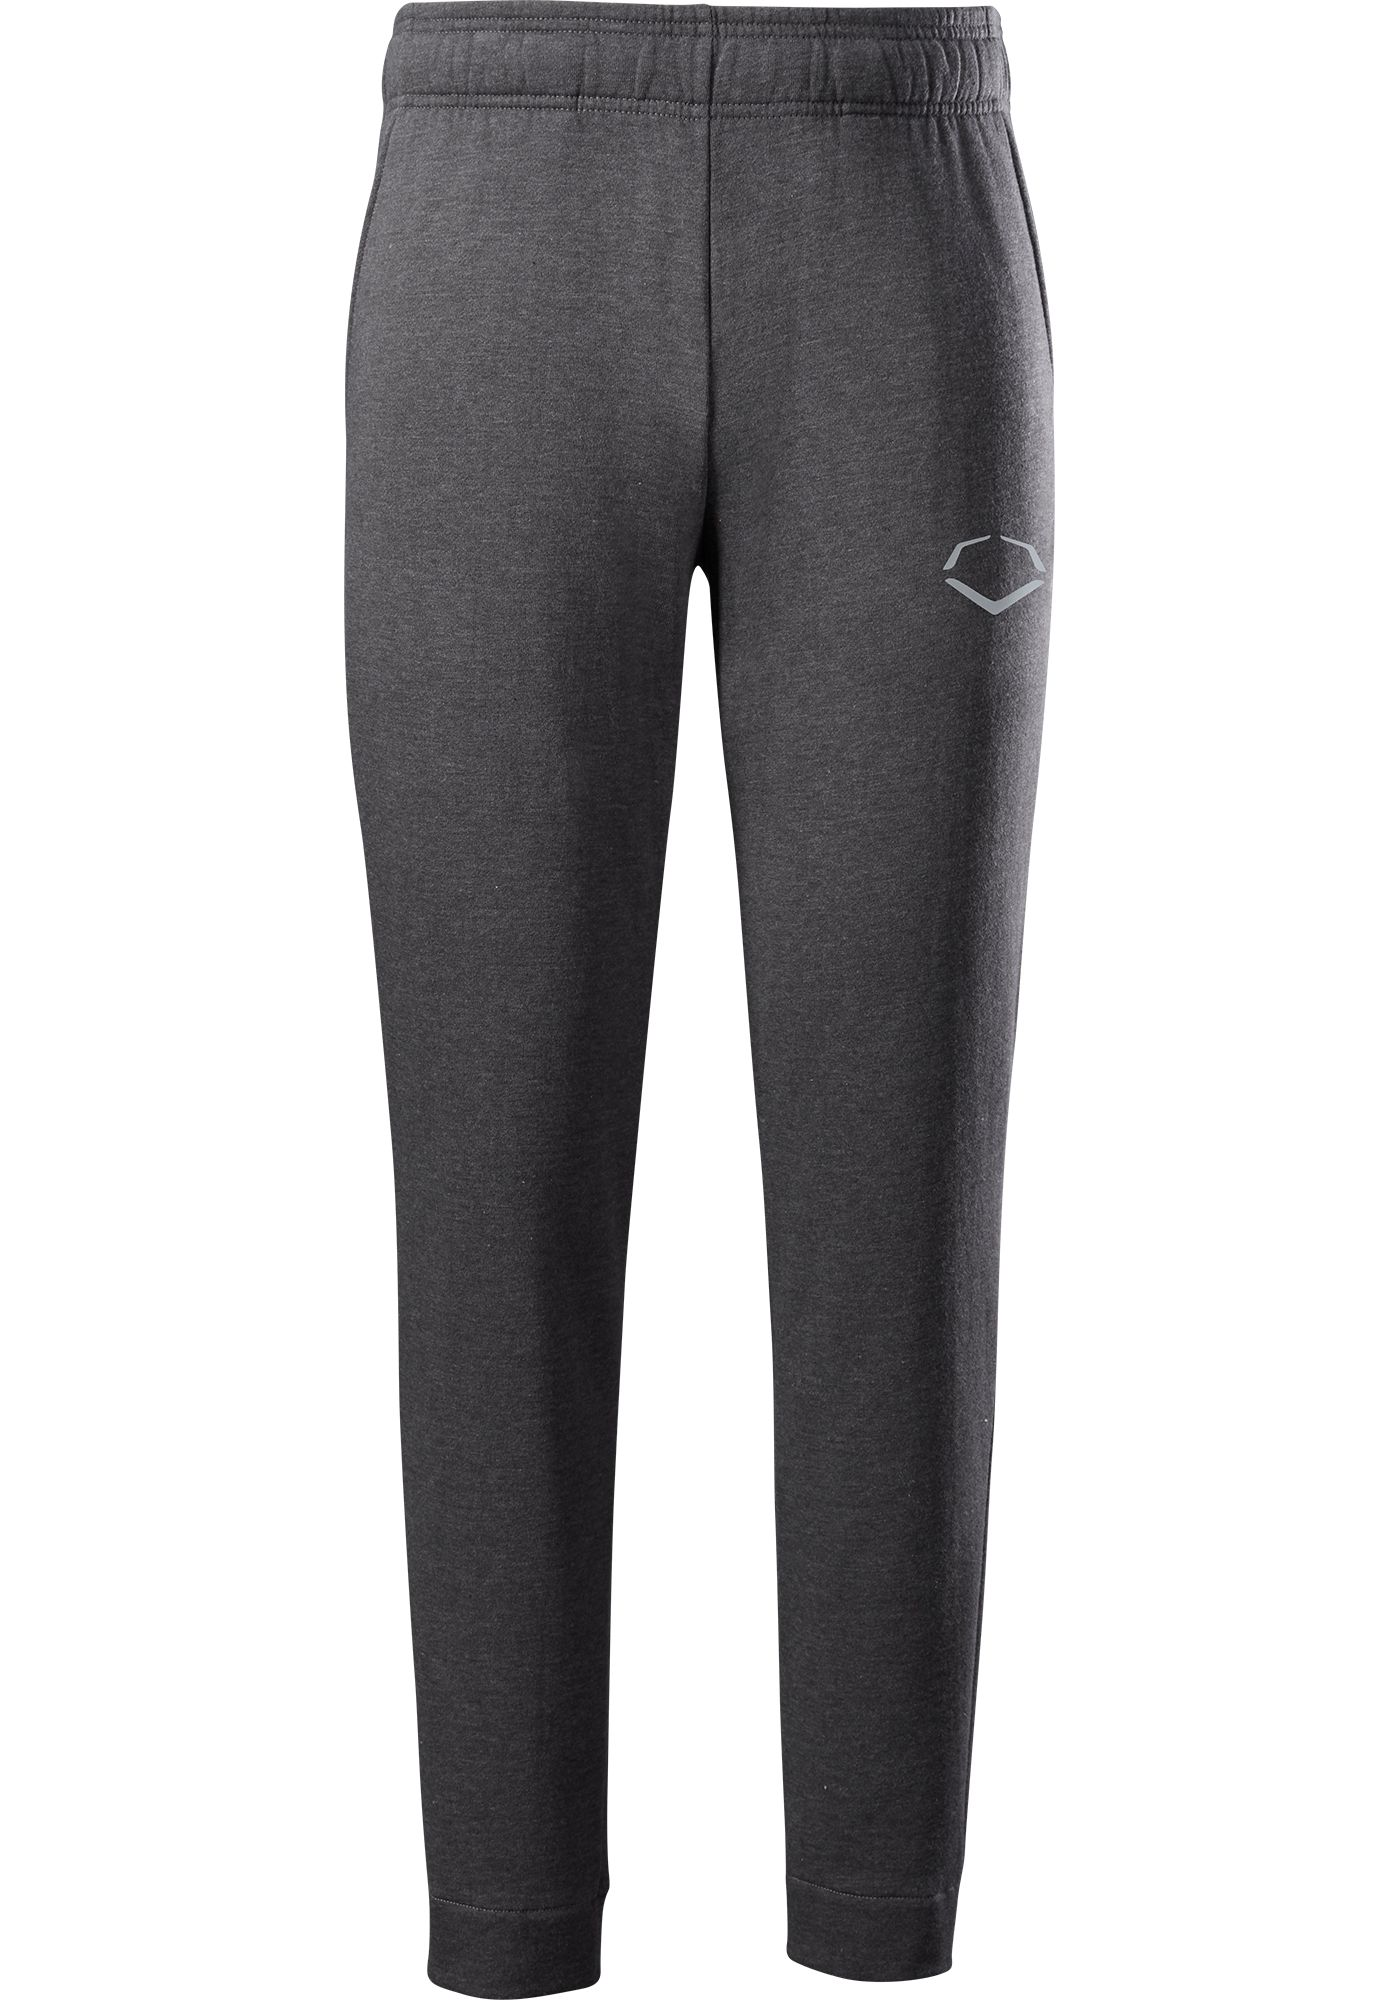 EvoShield Men's Pro Team Fleece Pants